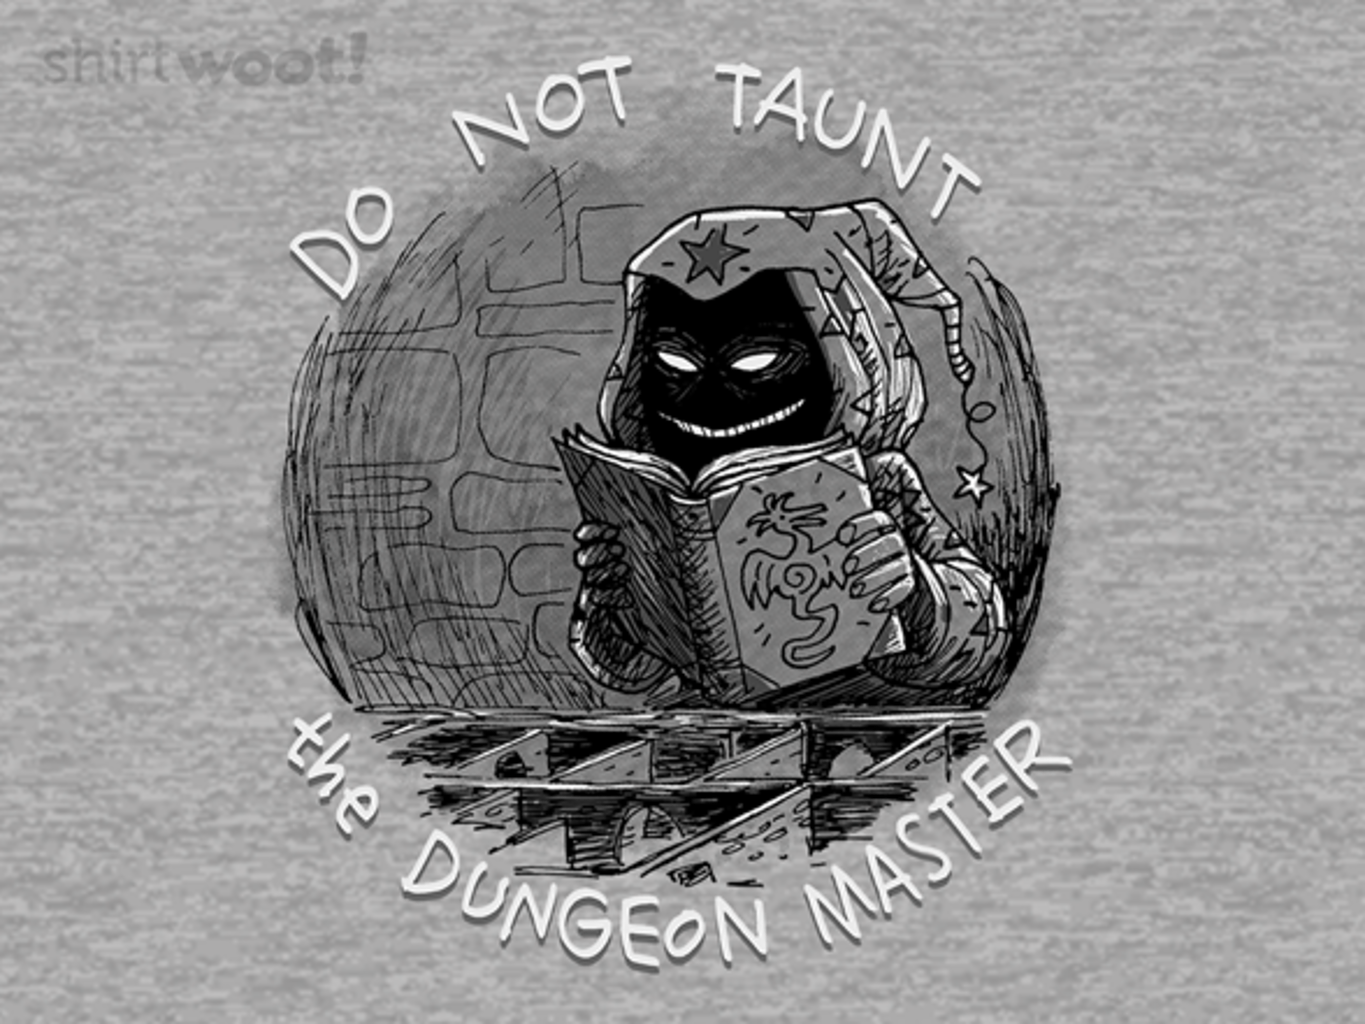 Woot!: Dungeon Rule Number One